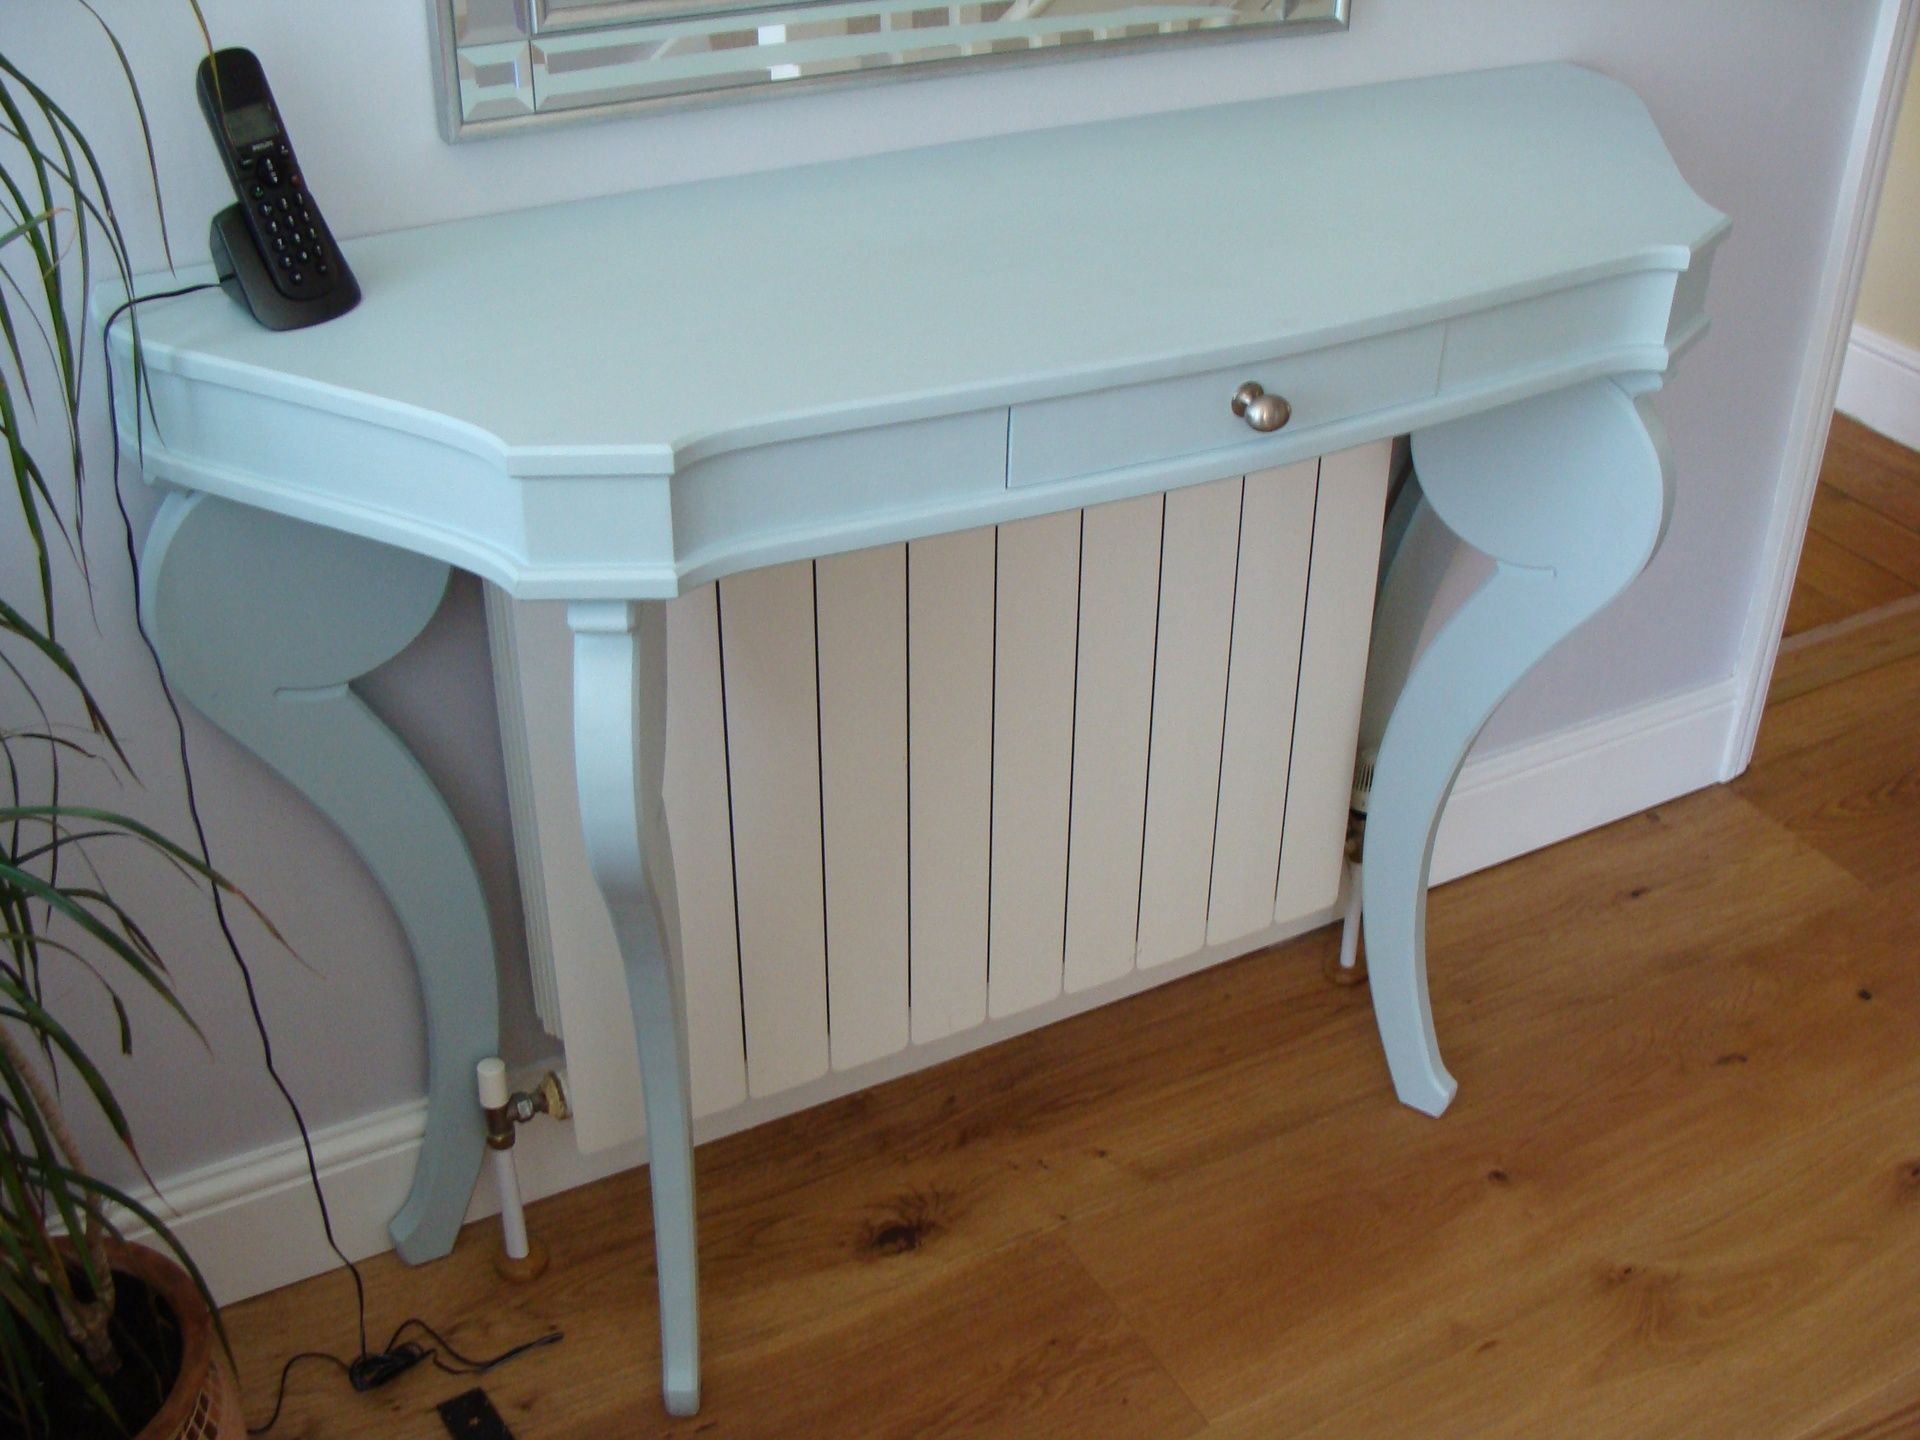 Marvelous Hall Table, Radiator Cover Solution.